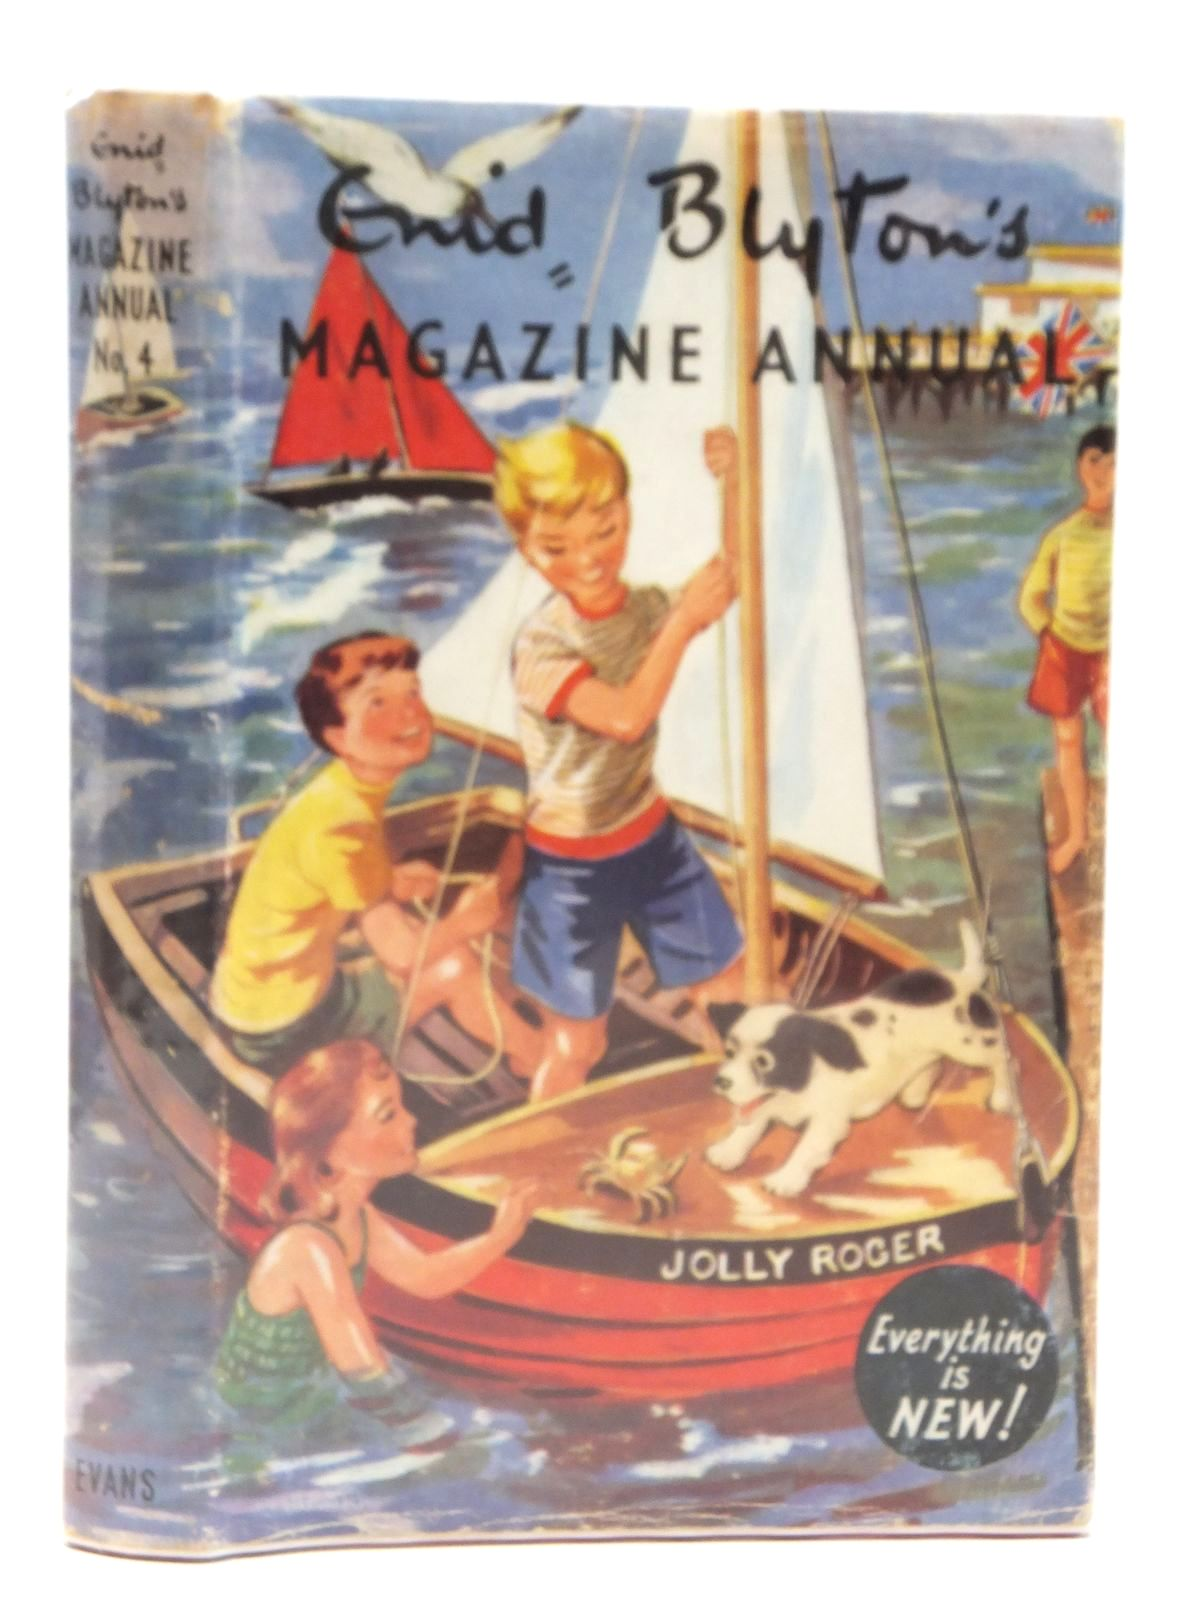 Photo of ENID BLYTON'S MAGAZINE ANNUAL No. 4 written by Blyton, Enid published by Evans Brothers Limited (STOCK CODE: 2121518)  for sale by Stella & Rose's Books